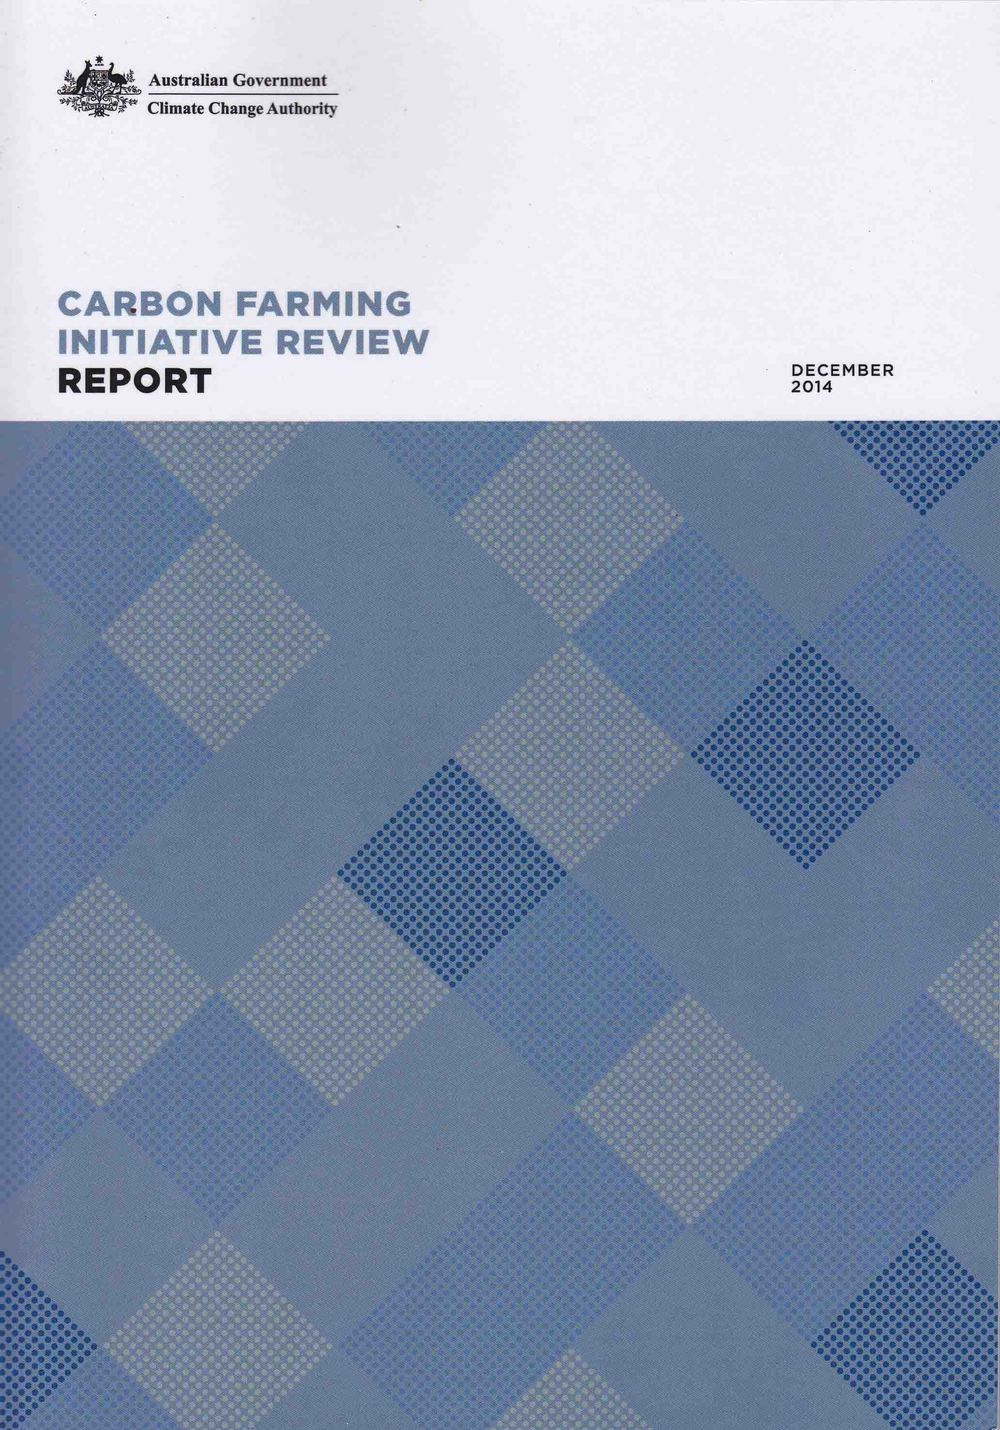 Read on for the Climate Change Authority's CFI Review...